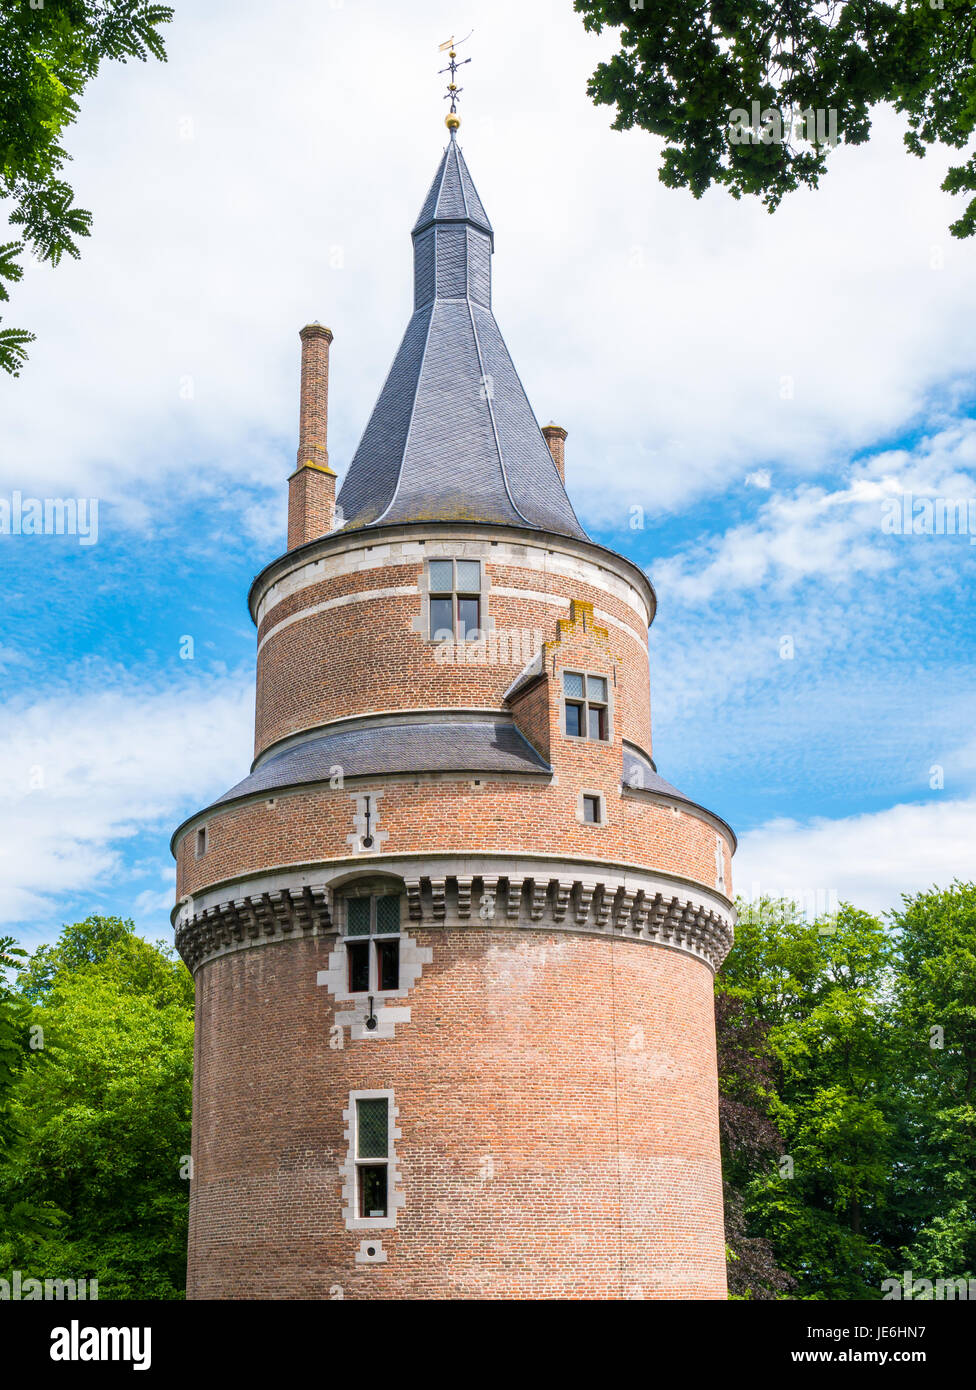 Top of Burgundian tower of Duurstede castle in Wijk bij Duurstede in province Utrecht, Netherlands Stock Photo